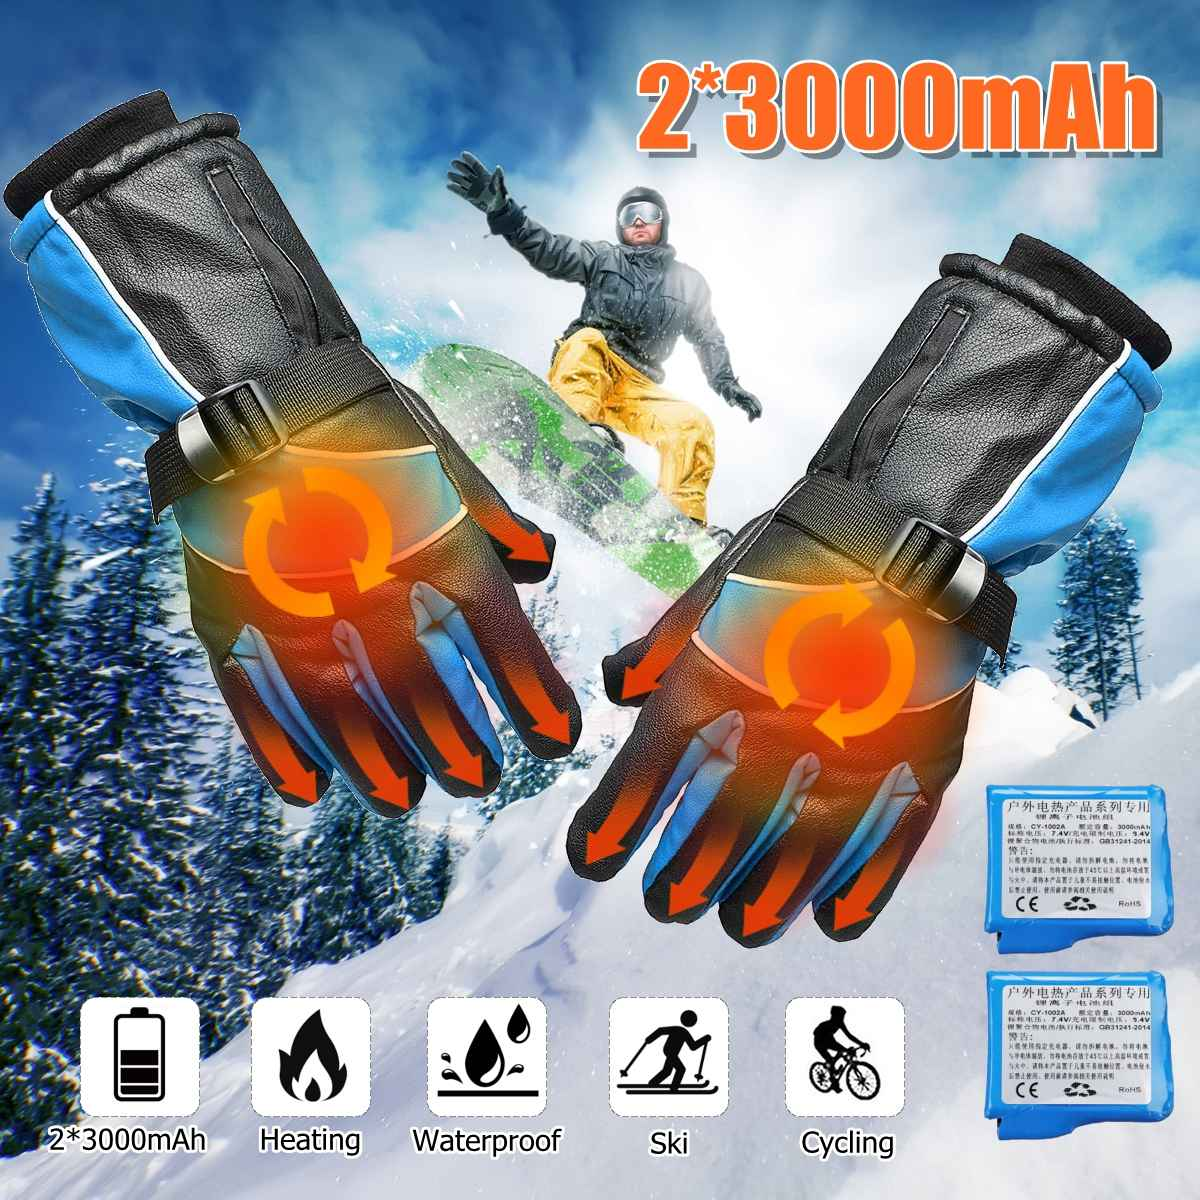 1 Pair Waterproof 2000MAh Rechargeable Motorcycle Electric Heated Gloves Snowboarding Work Winter Hands Warmer Outdoor Safety H